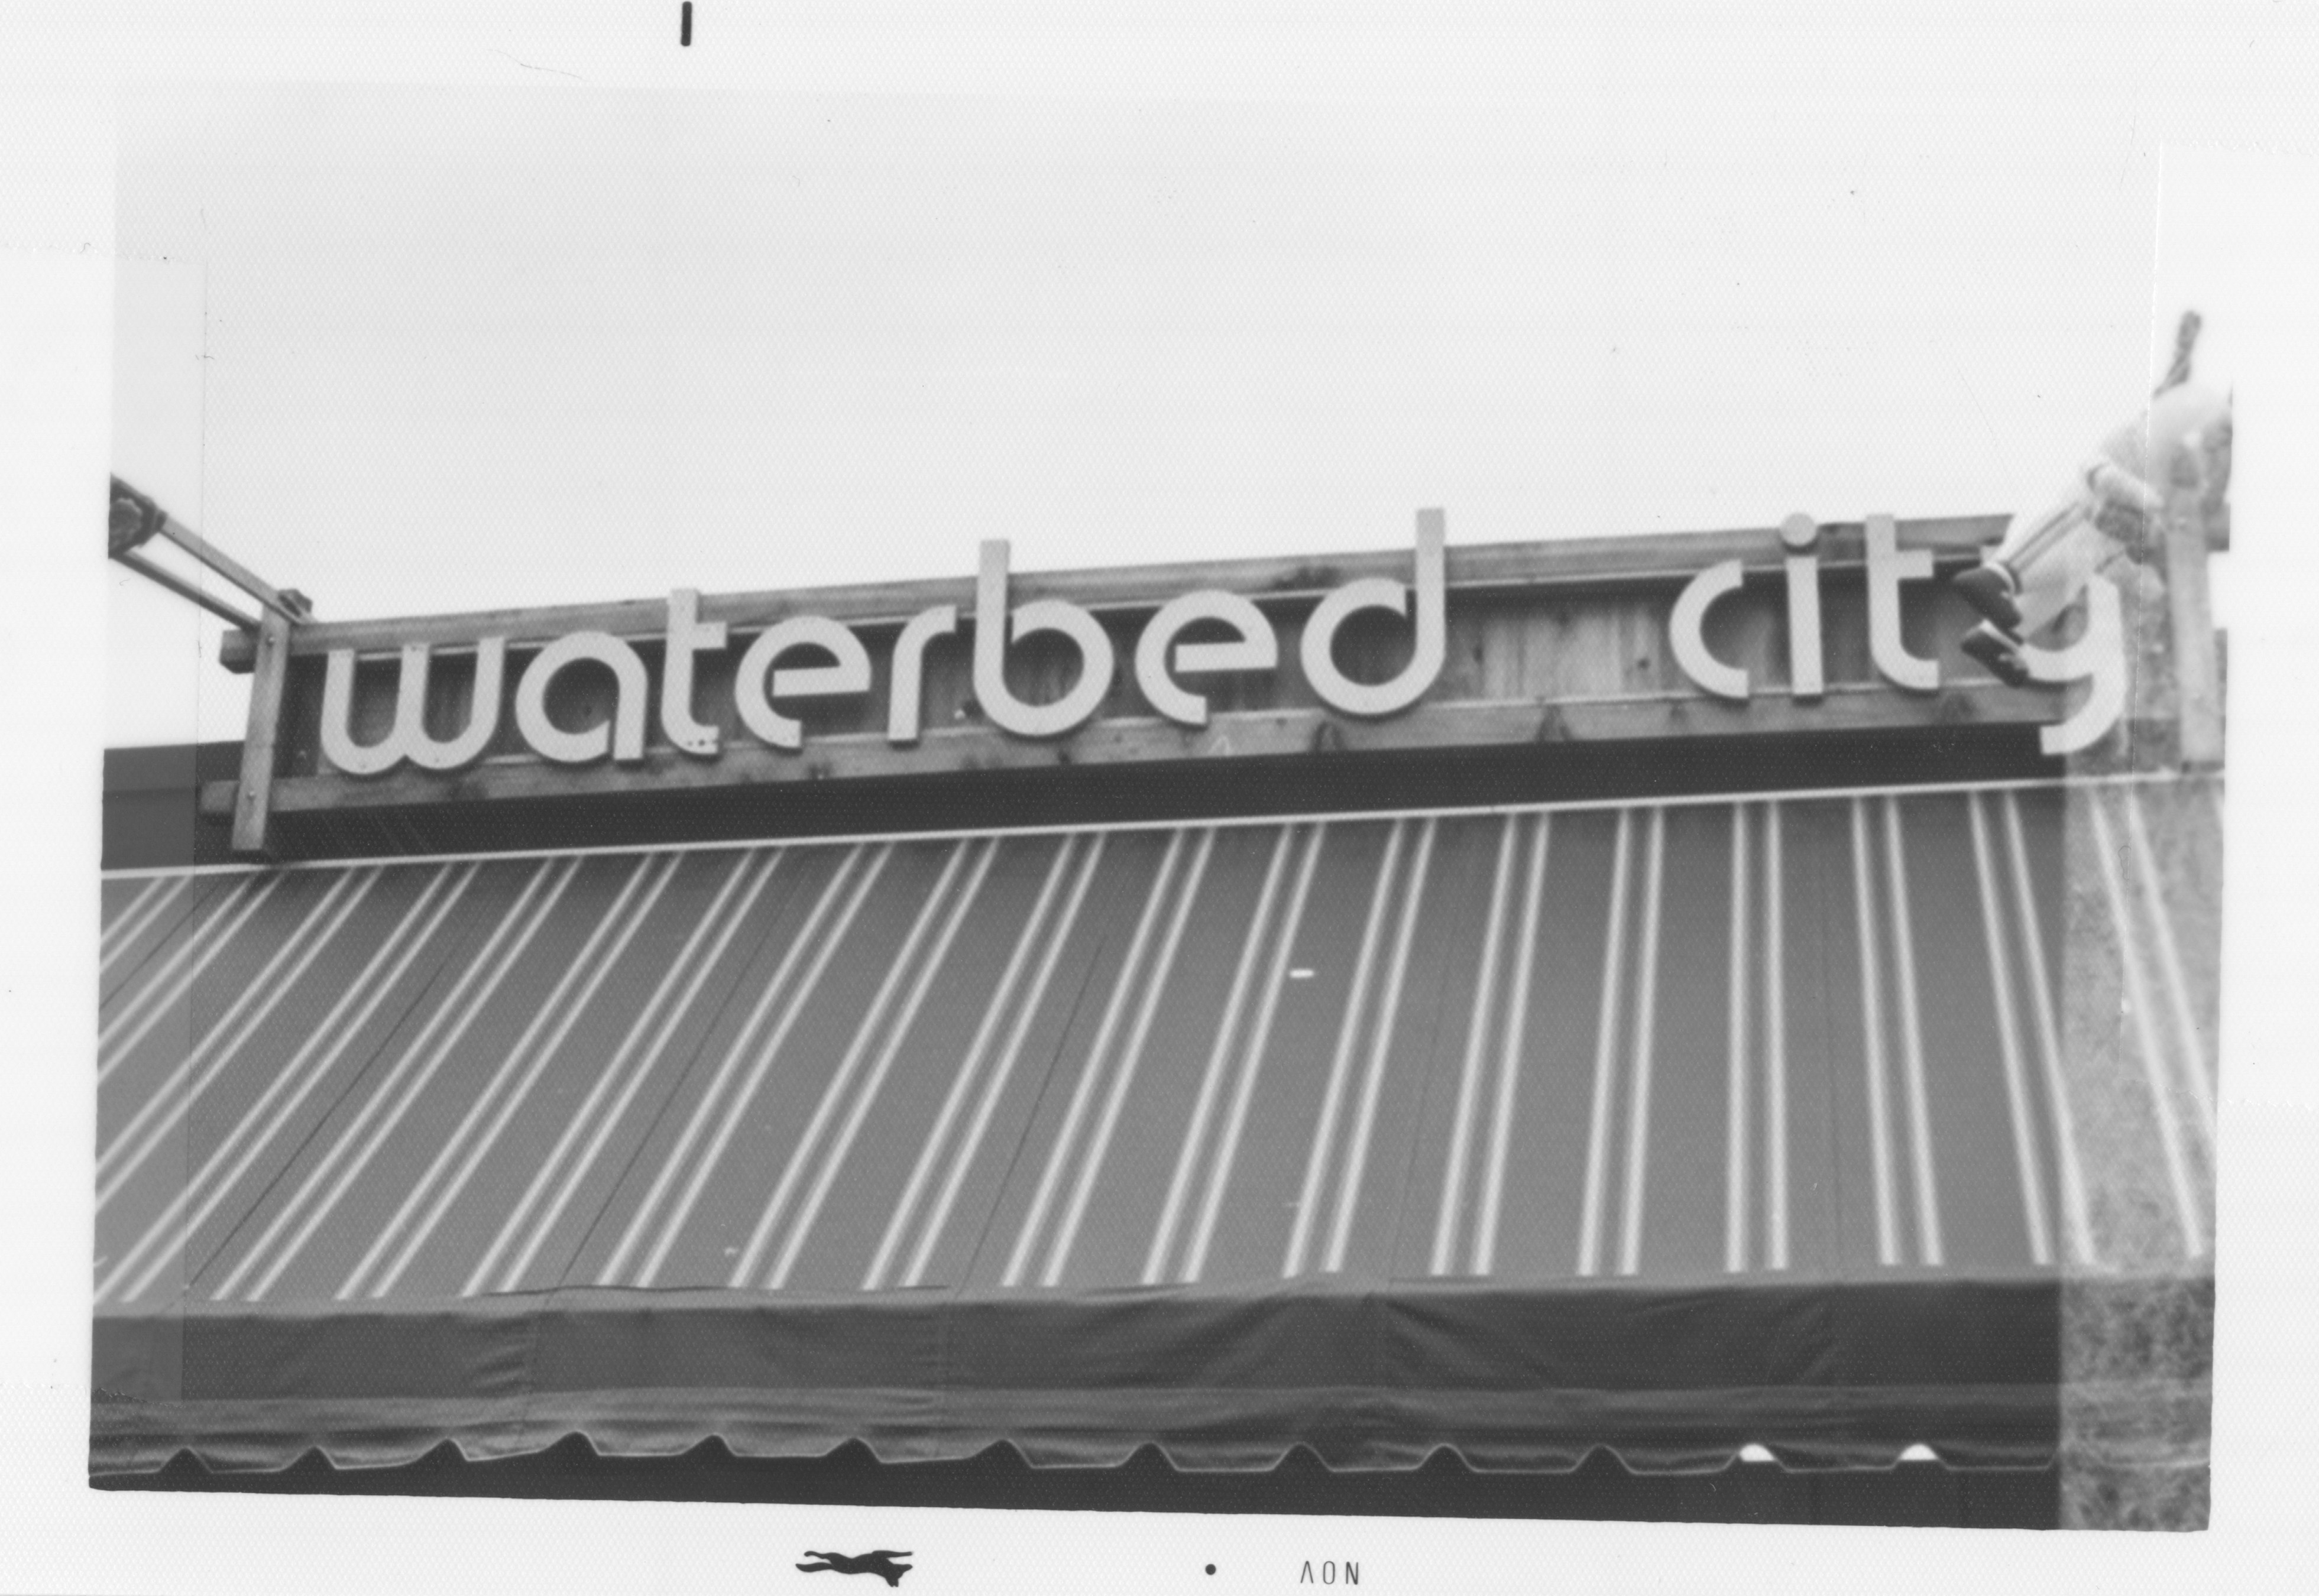 waterbed city 1977 ann arbor district library